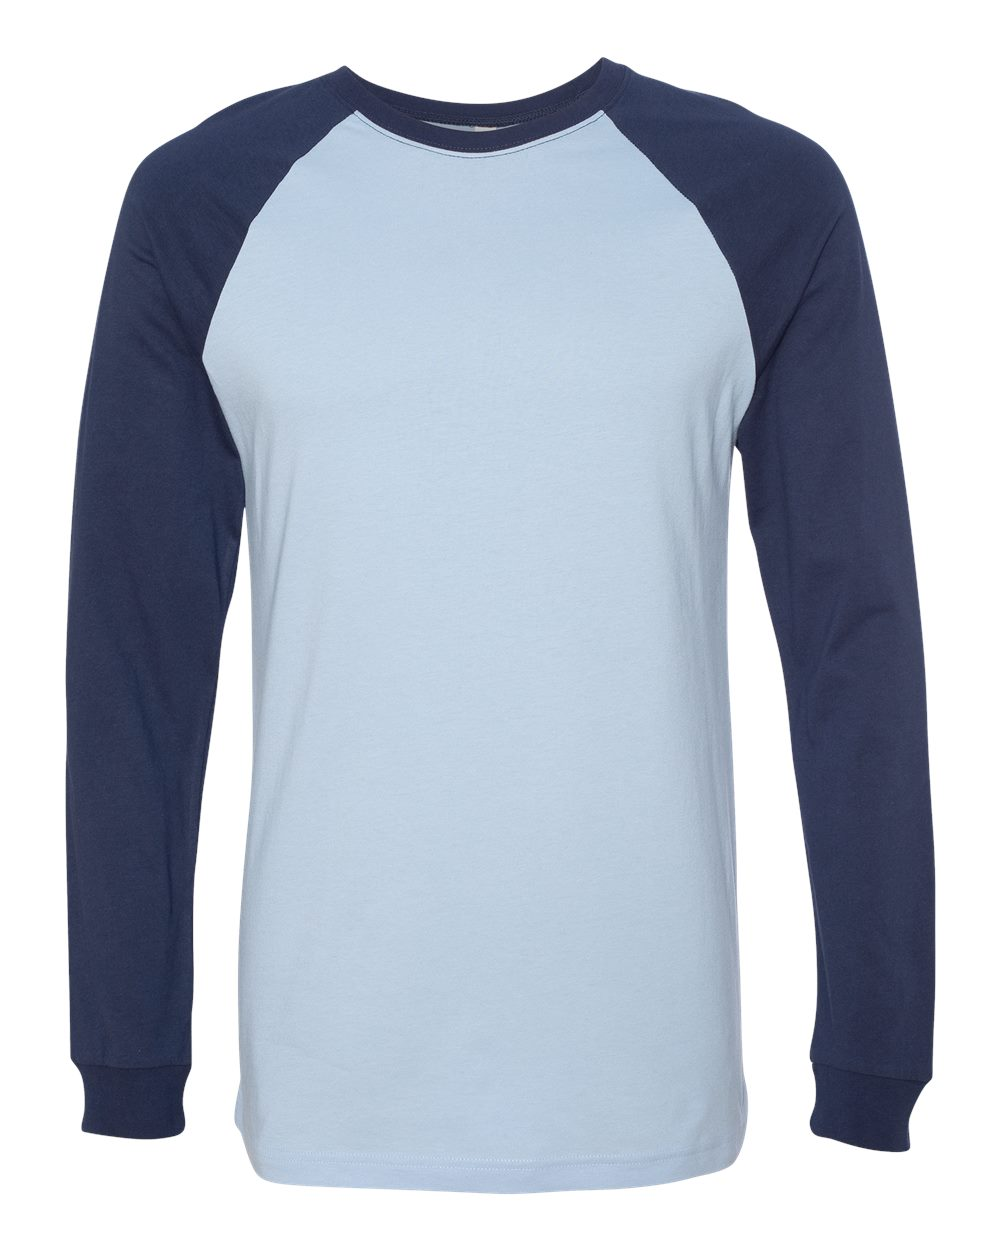 click to view Light Blue/Navy